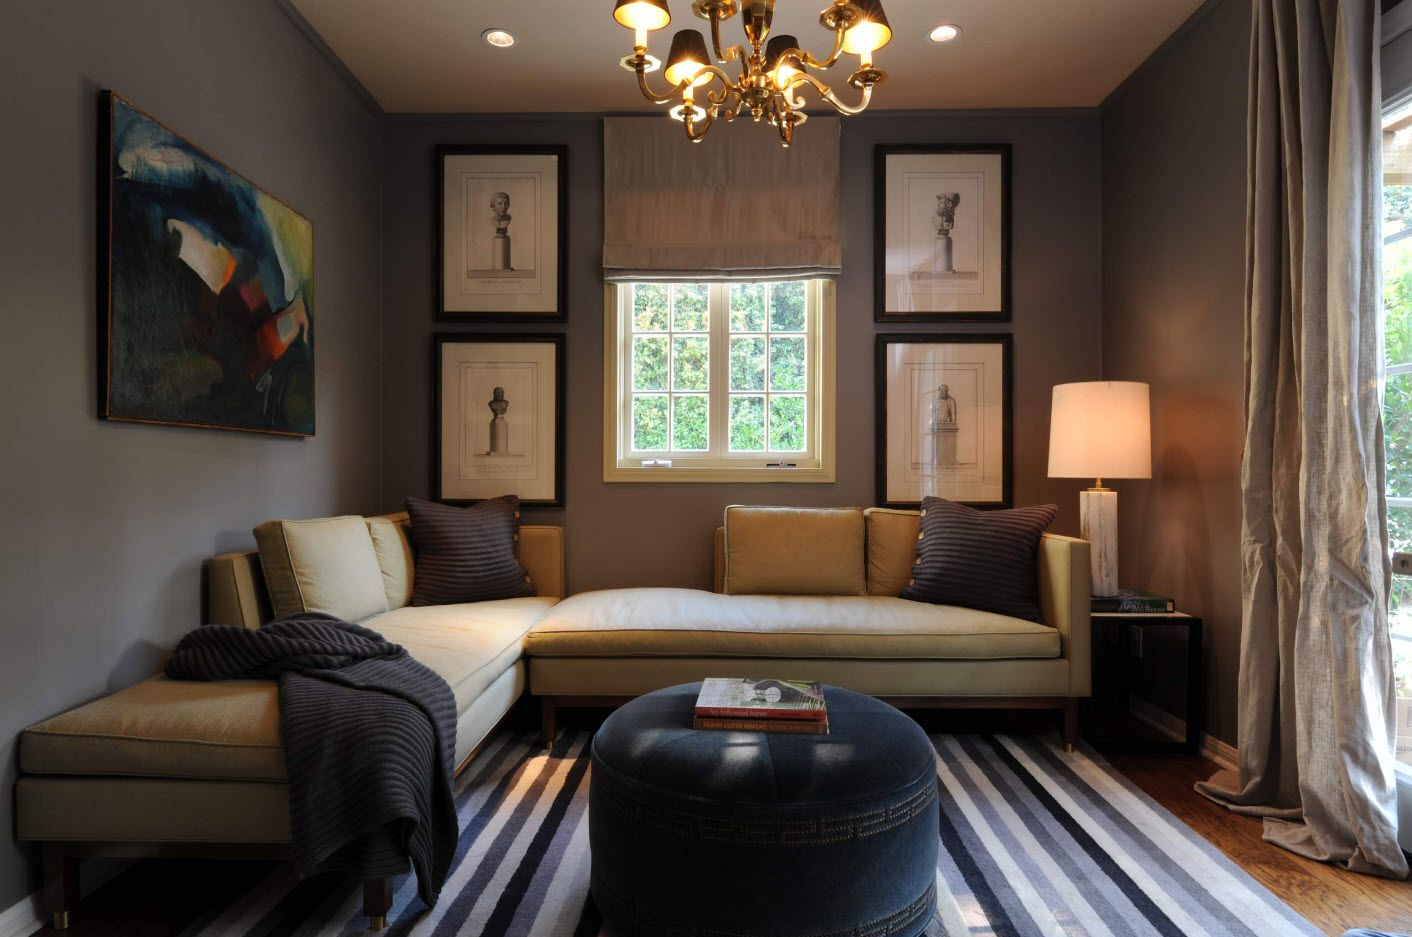 Brown and black mix of design ideas at thespectacular living room